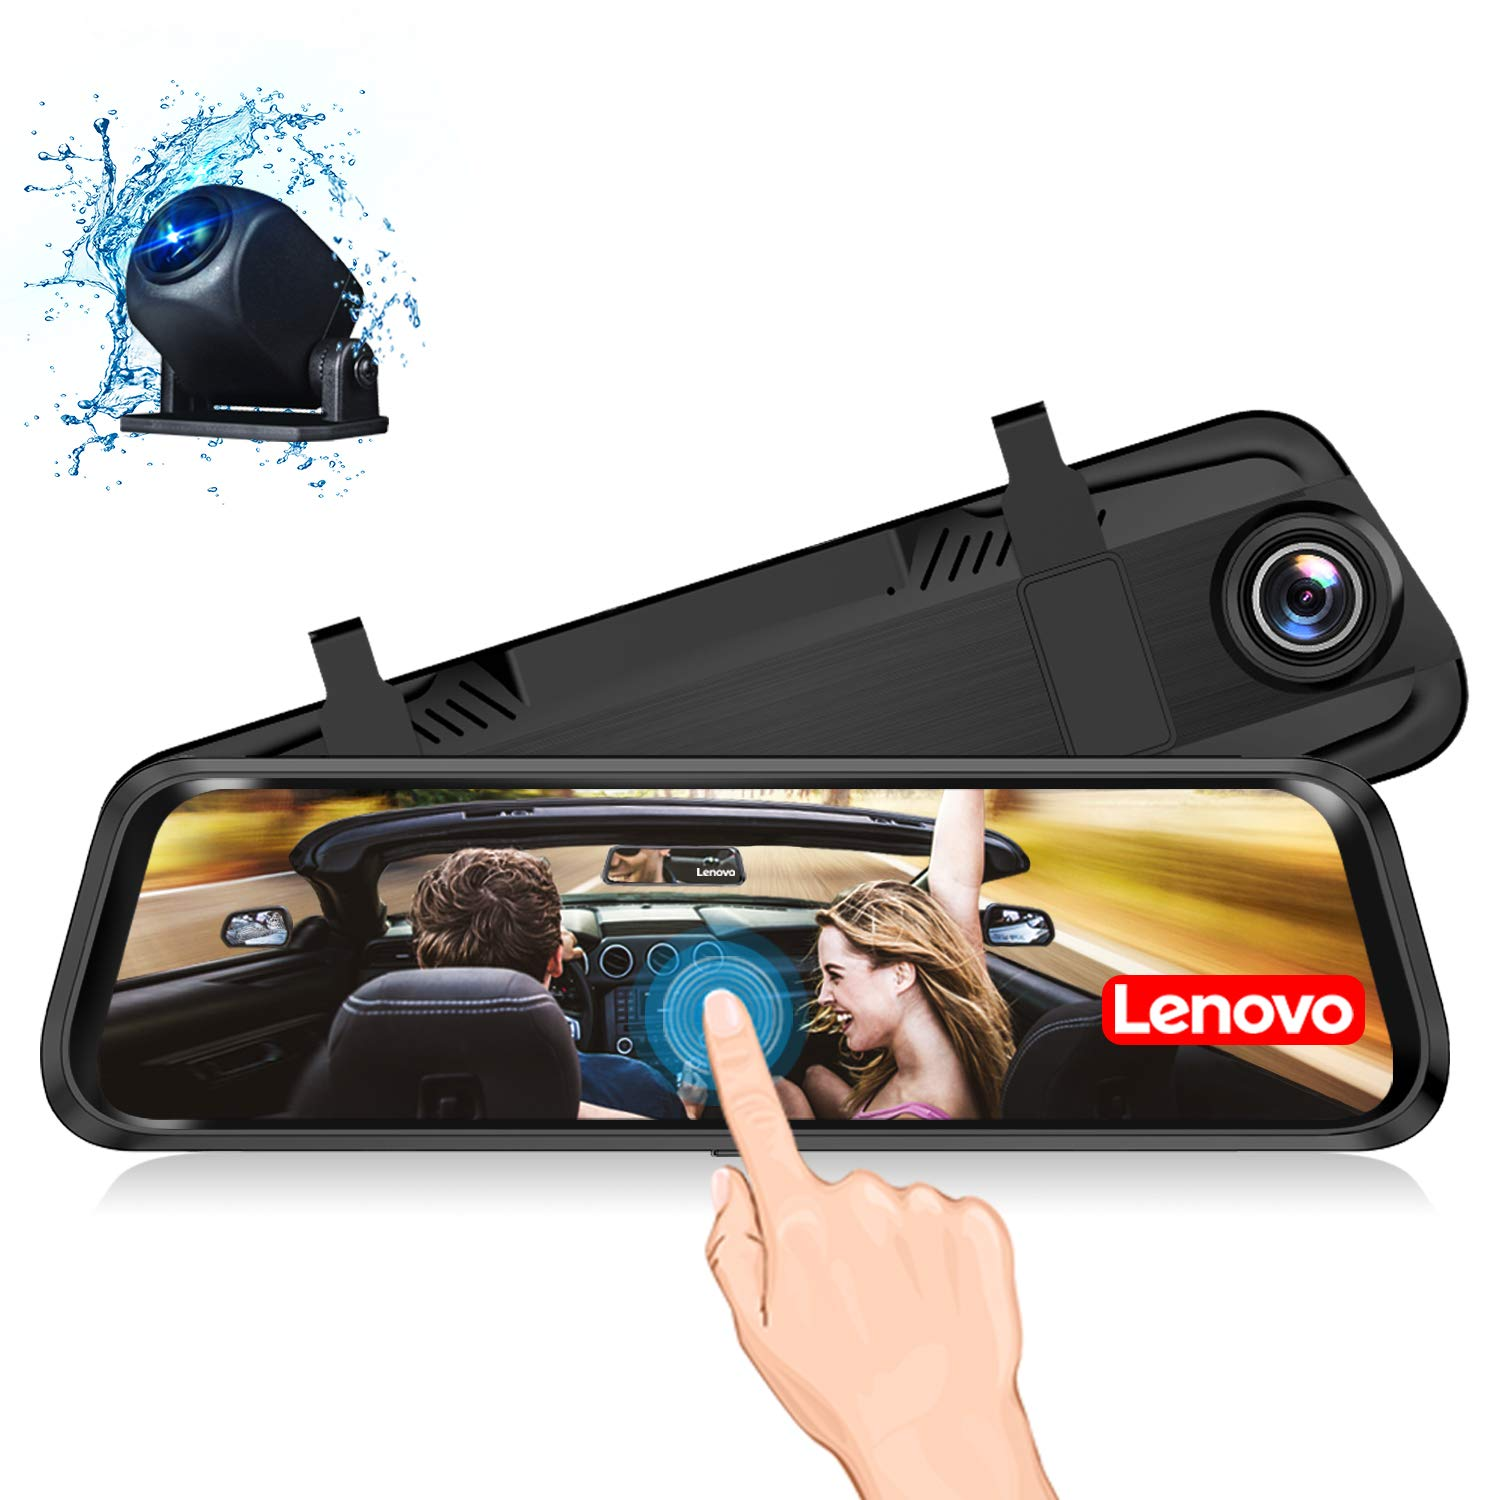 B07WLLZJGS Lenovo Mirror Dash Cam, Backup Camera 9.66 Inch Mirror Dash Screen, 1080P Cam Touch Full Screen Rearview Front and Rear Dual Lens, Waterproof Full HD Camera Touch Screen HR06A 71AD2BLgUWjL._SL1500_